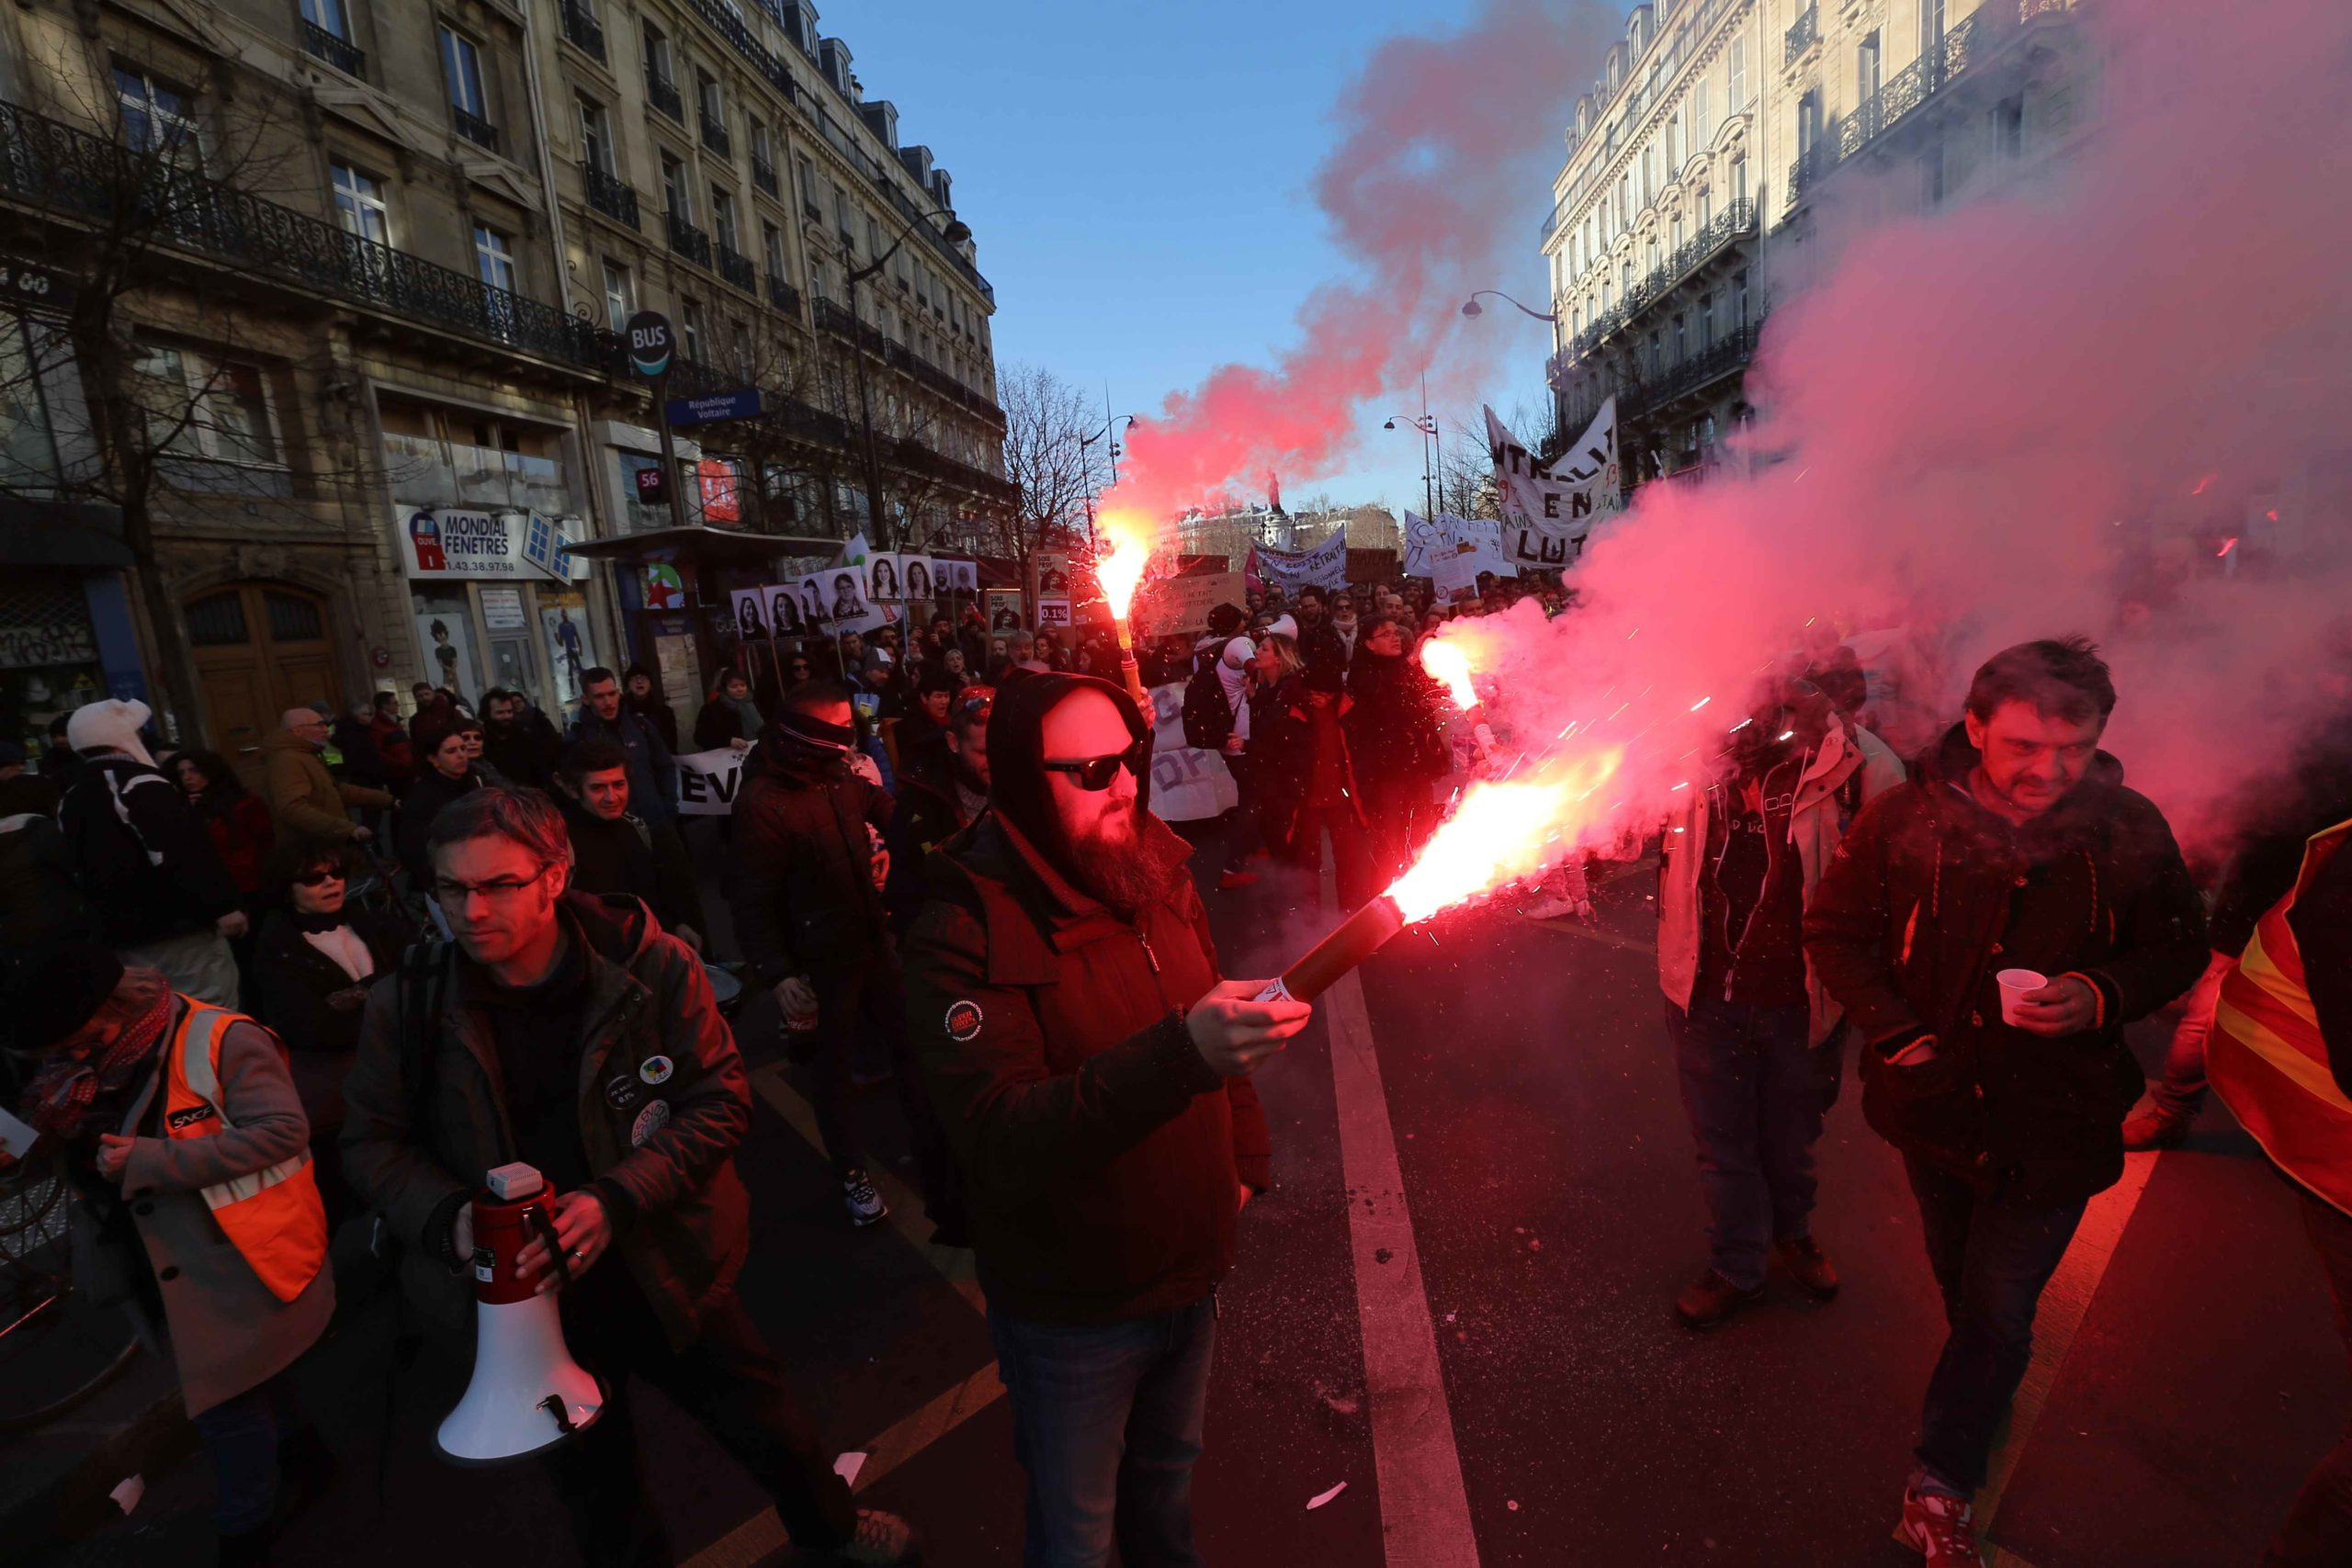 Protesters hold burning flares during a demonstration against the French government's plan to overhaul the country's retirement system in Paris, on February 6, 2020. Protesters took to the streets in a ninth inter-professional day of strikes and demonstrat